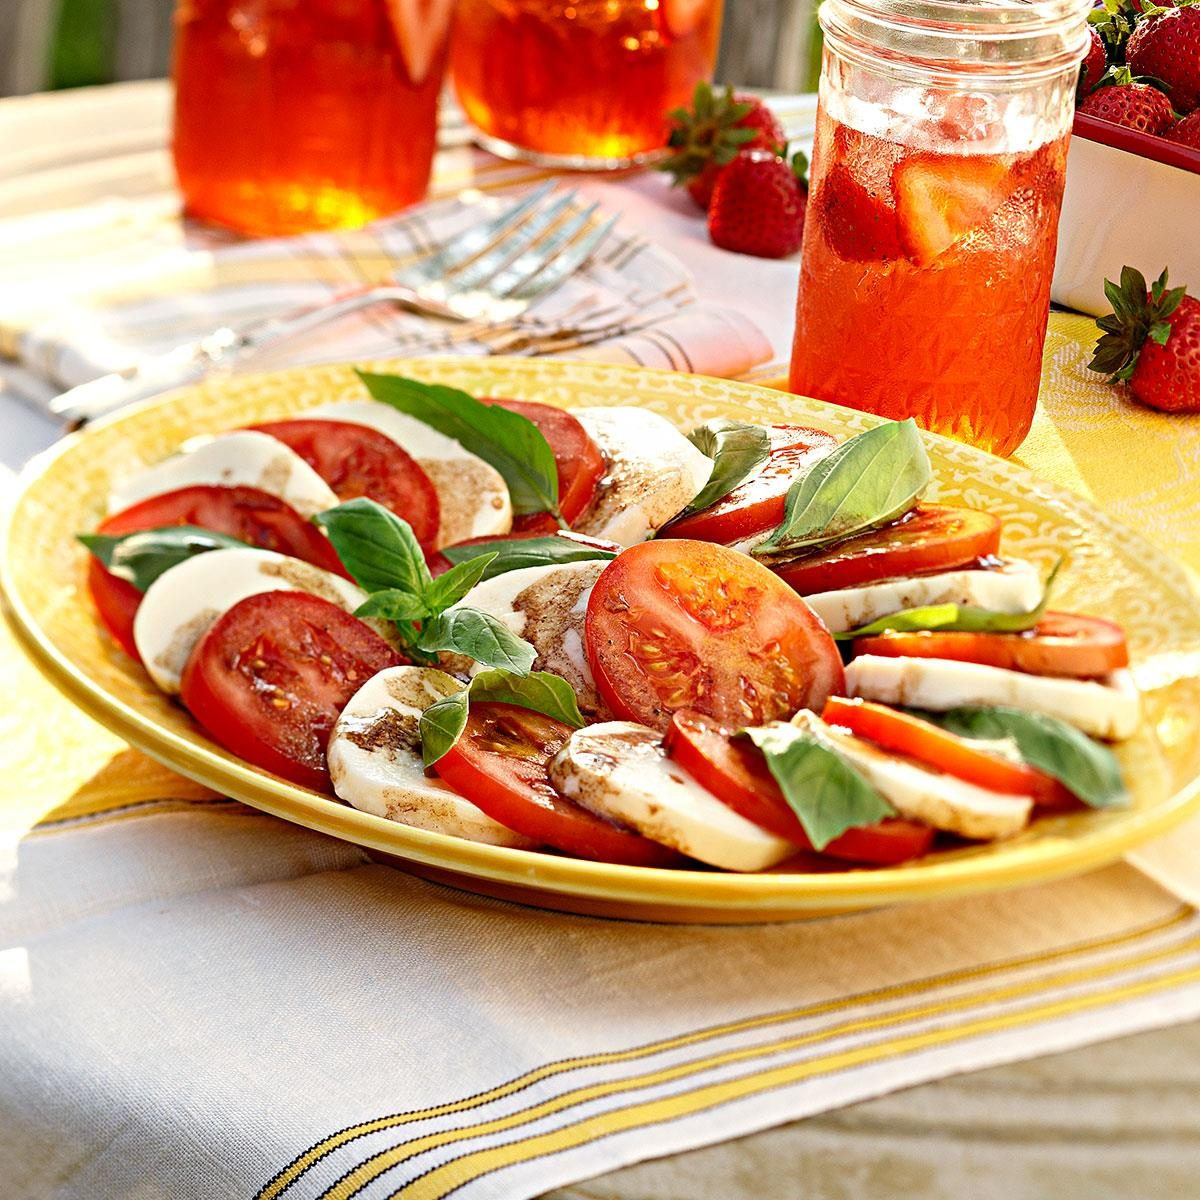 The Mozzarella Tomato Basil Caprese Salad You'll Want to Serve All the Time